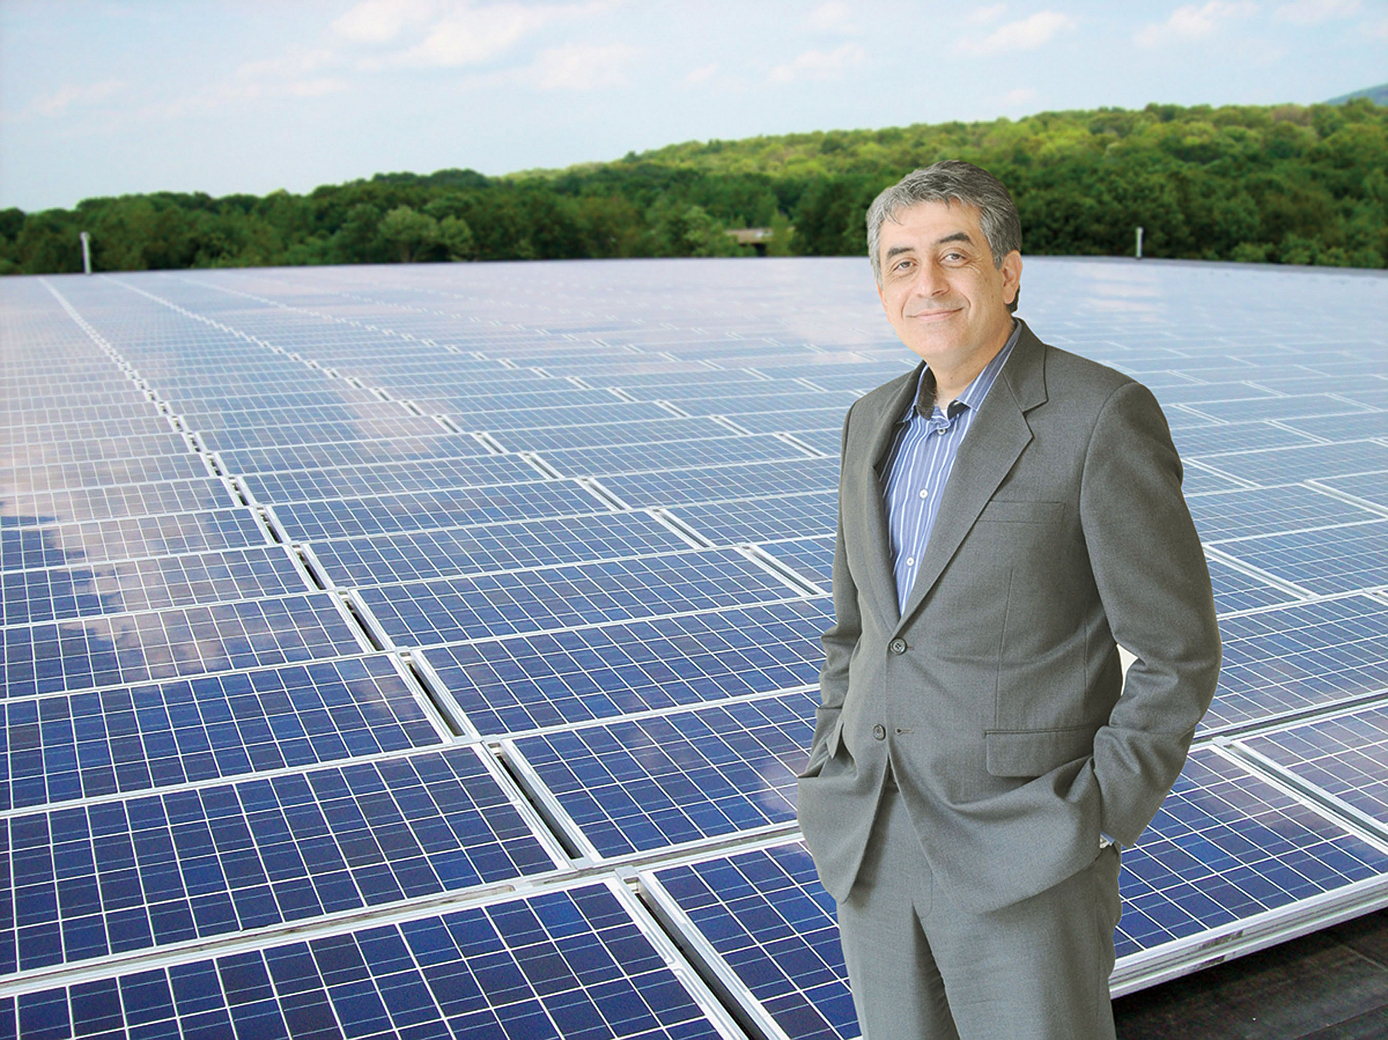 SunEdison spectacular collapse into bankruptcy in 2016 shook the complete PV supply chain. Image: SunEdison